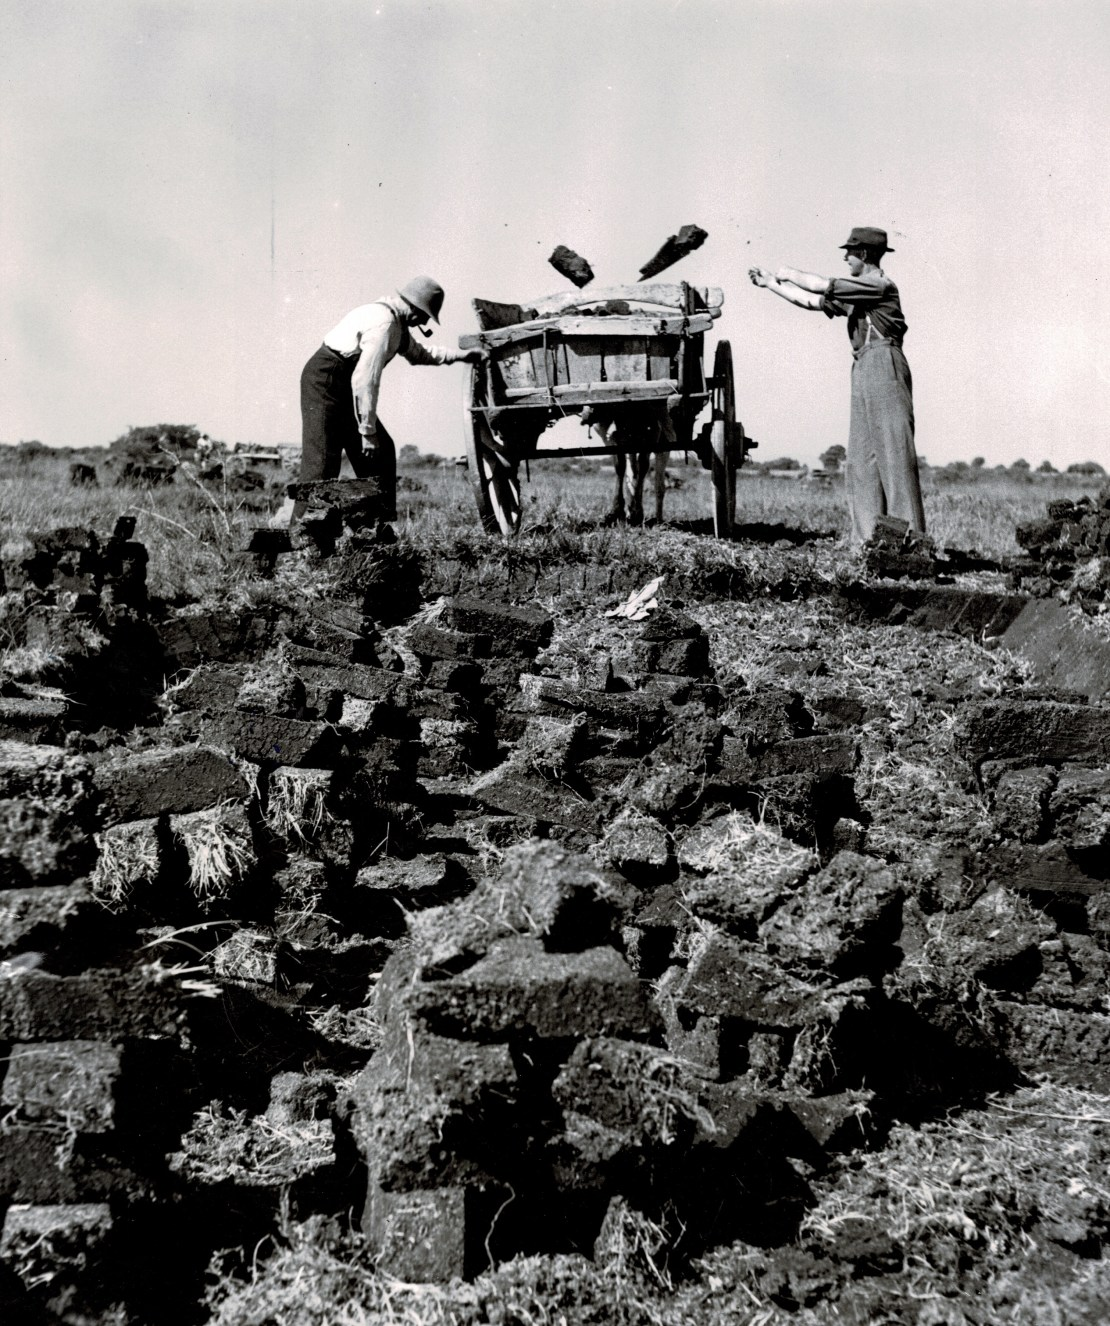 Two people load chunks of solid earth into a cart.